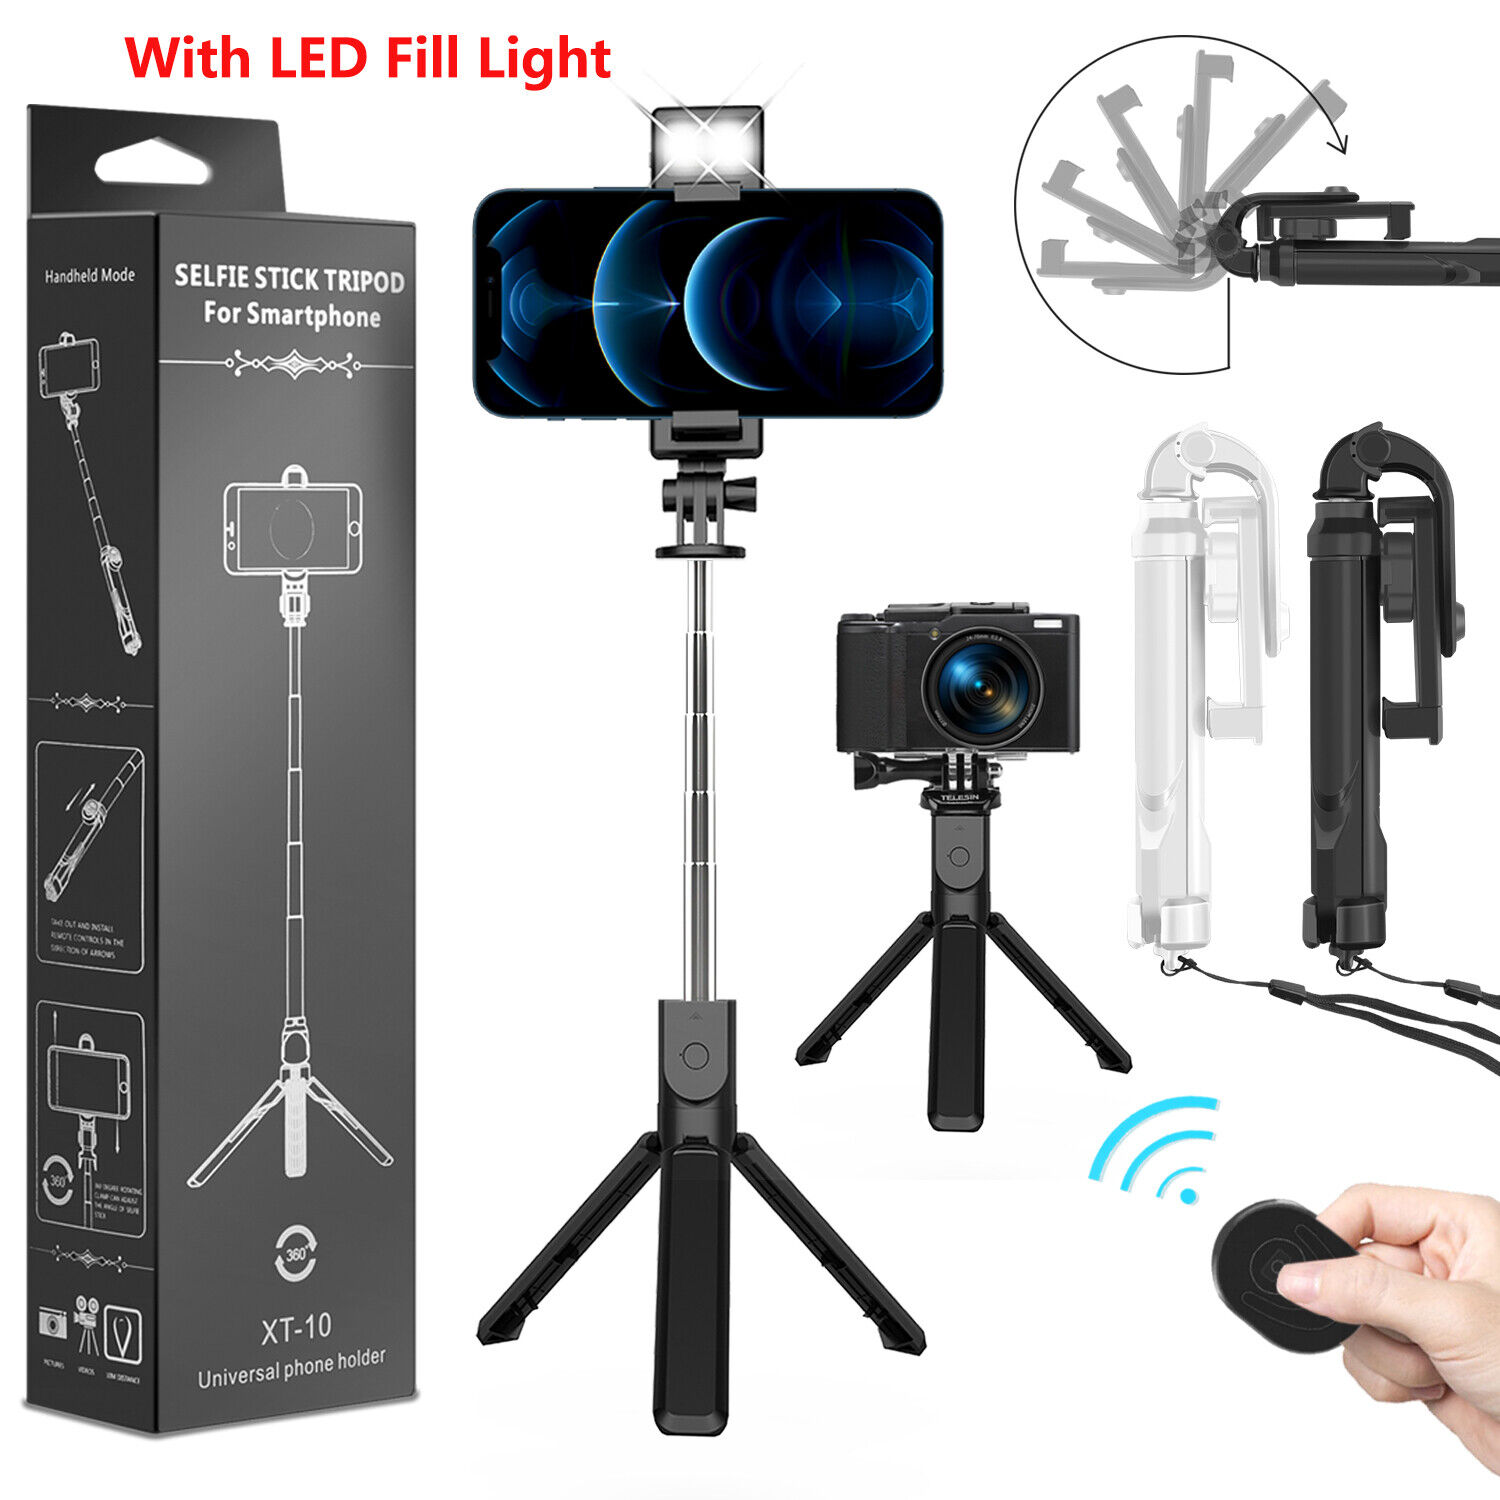 Selfie Stick Tripod Remote Shutter Extendable Monopod For iP